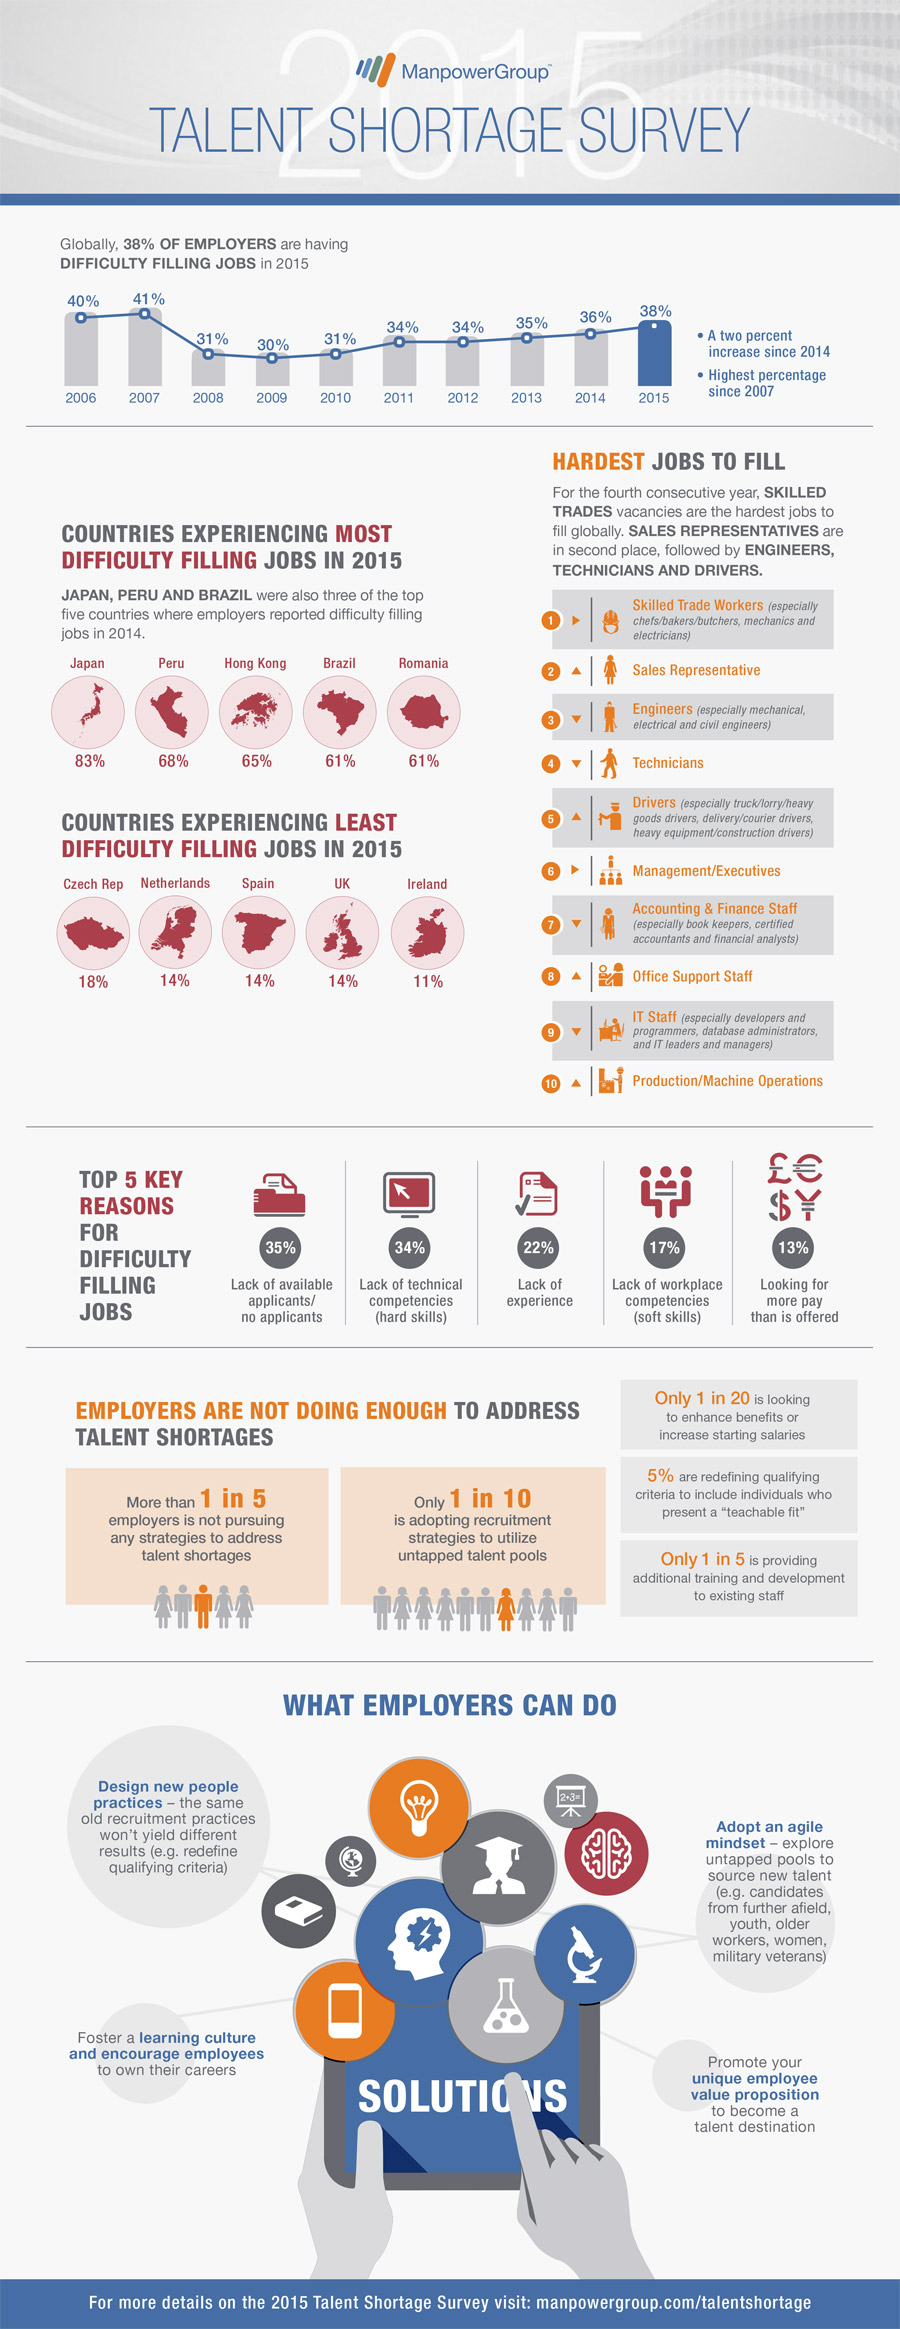 2015_Talent_Shortage_Survey_Infographic-lo_res